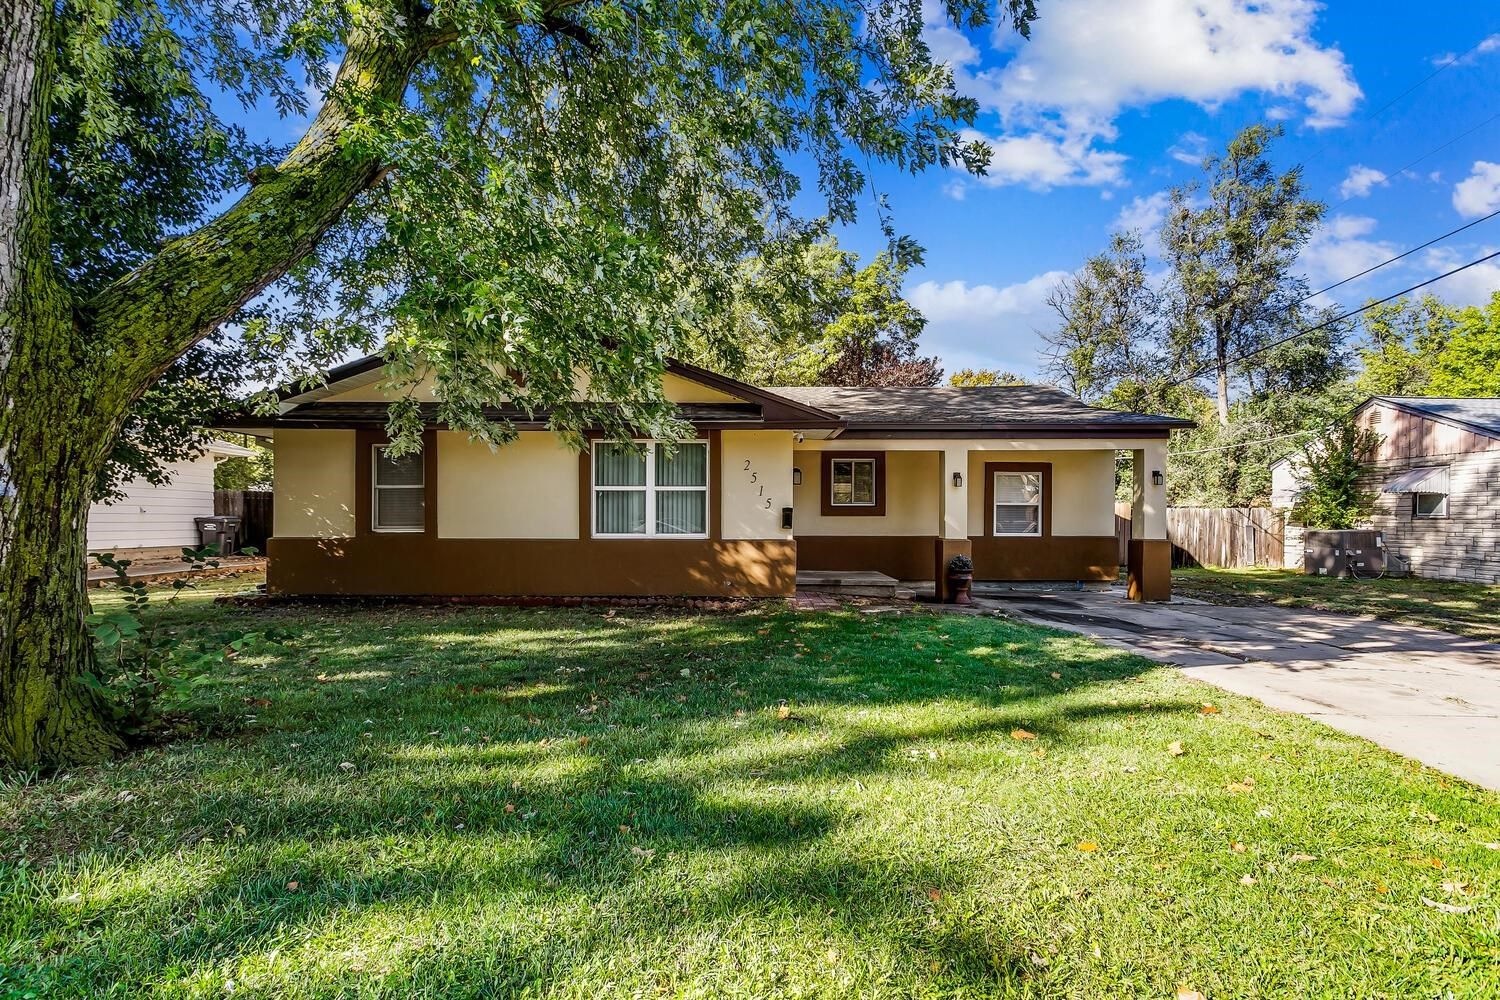 Welcome to this move-in ready home. This home features 4 bedroom, 2 bathroom and beautiful covered d